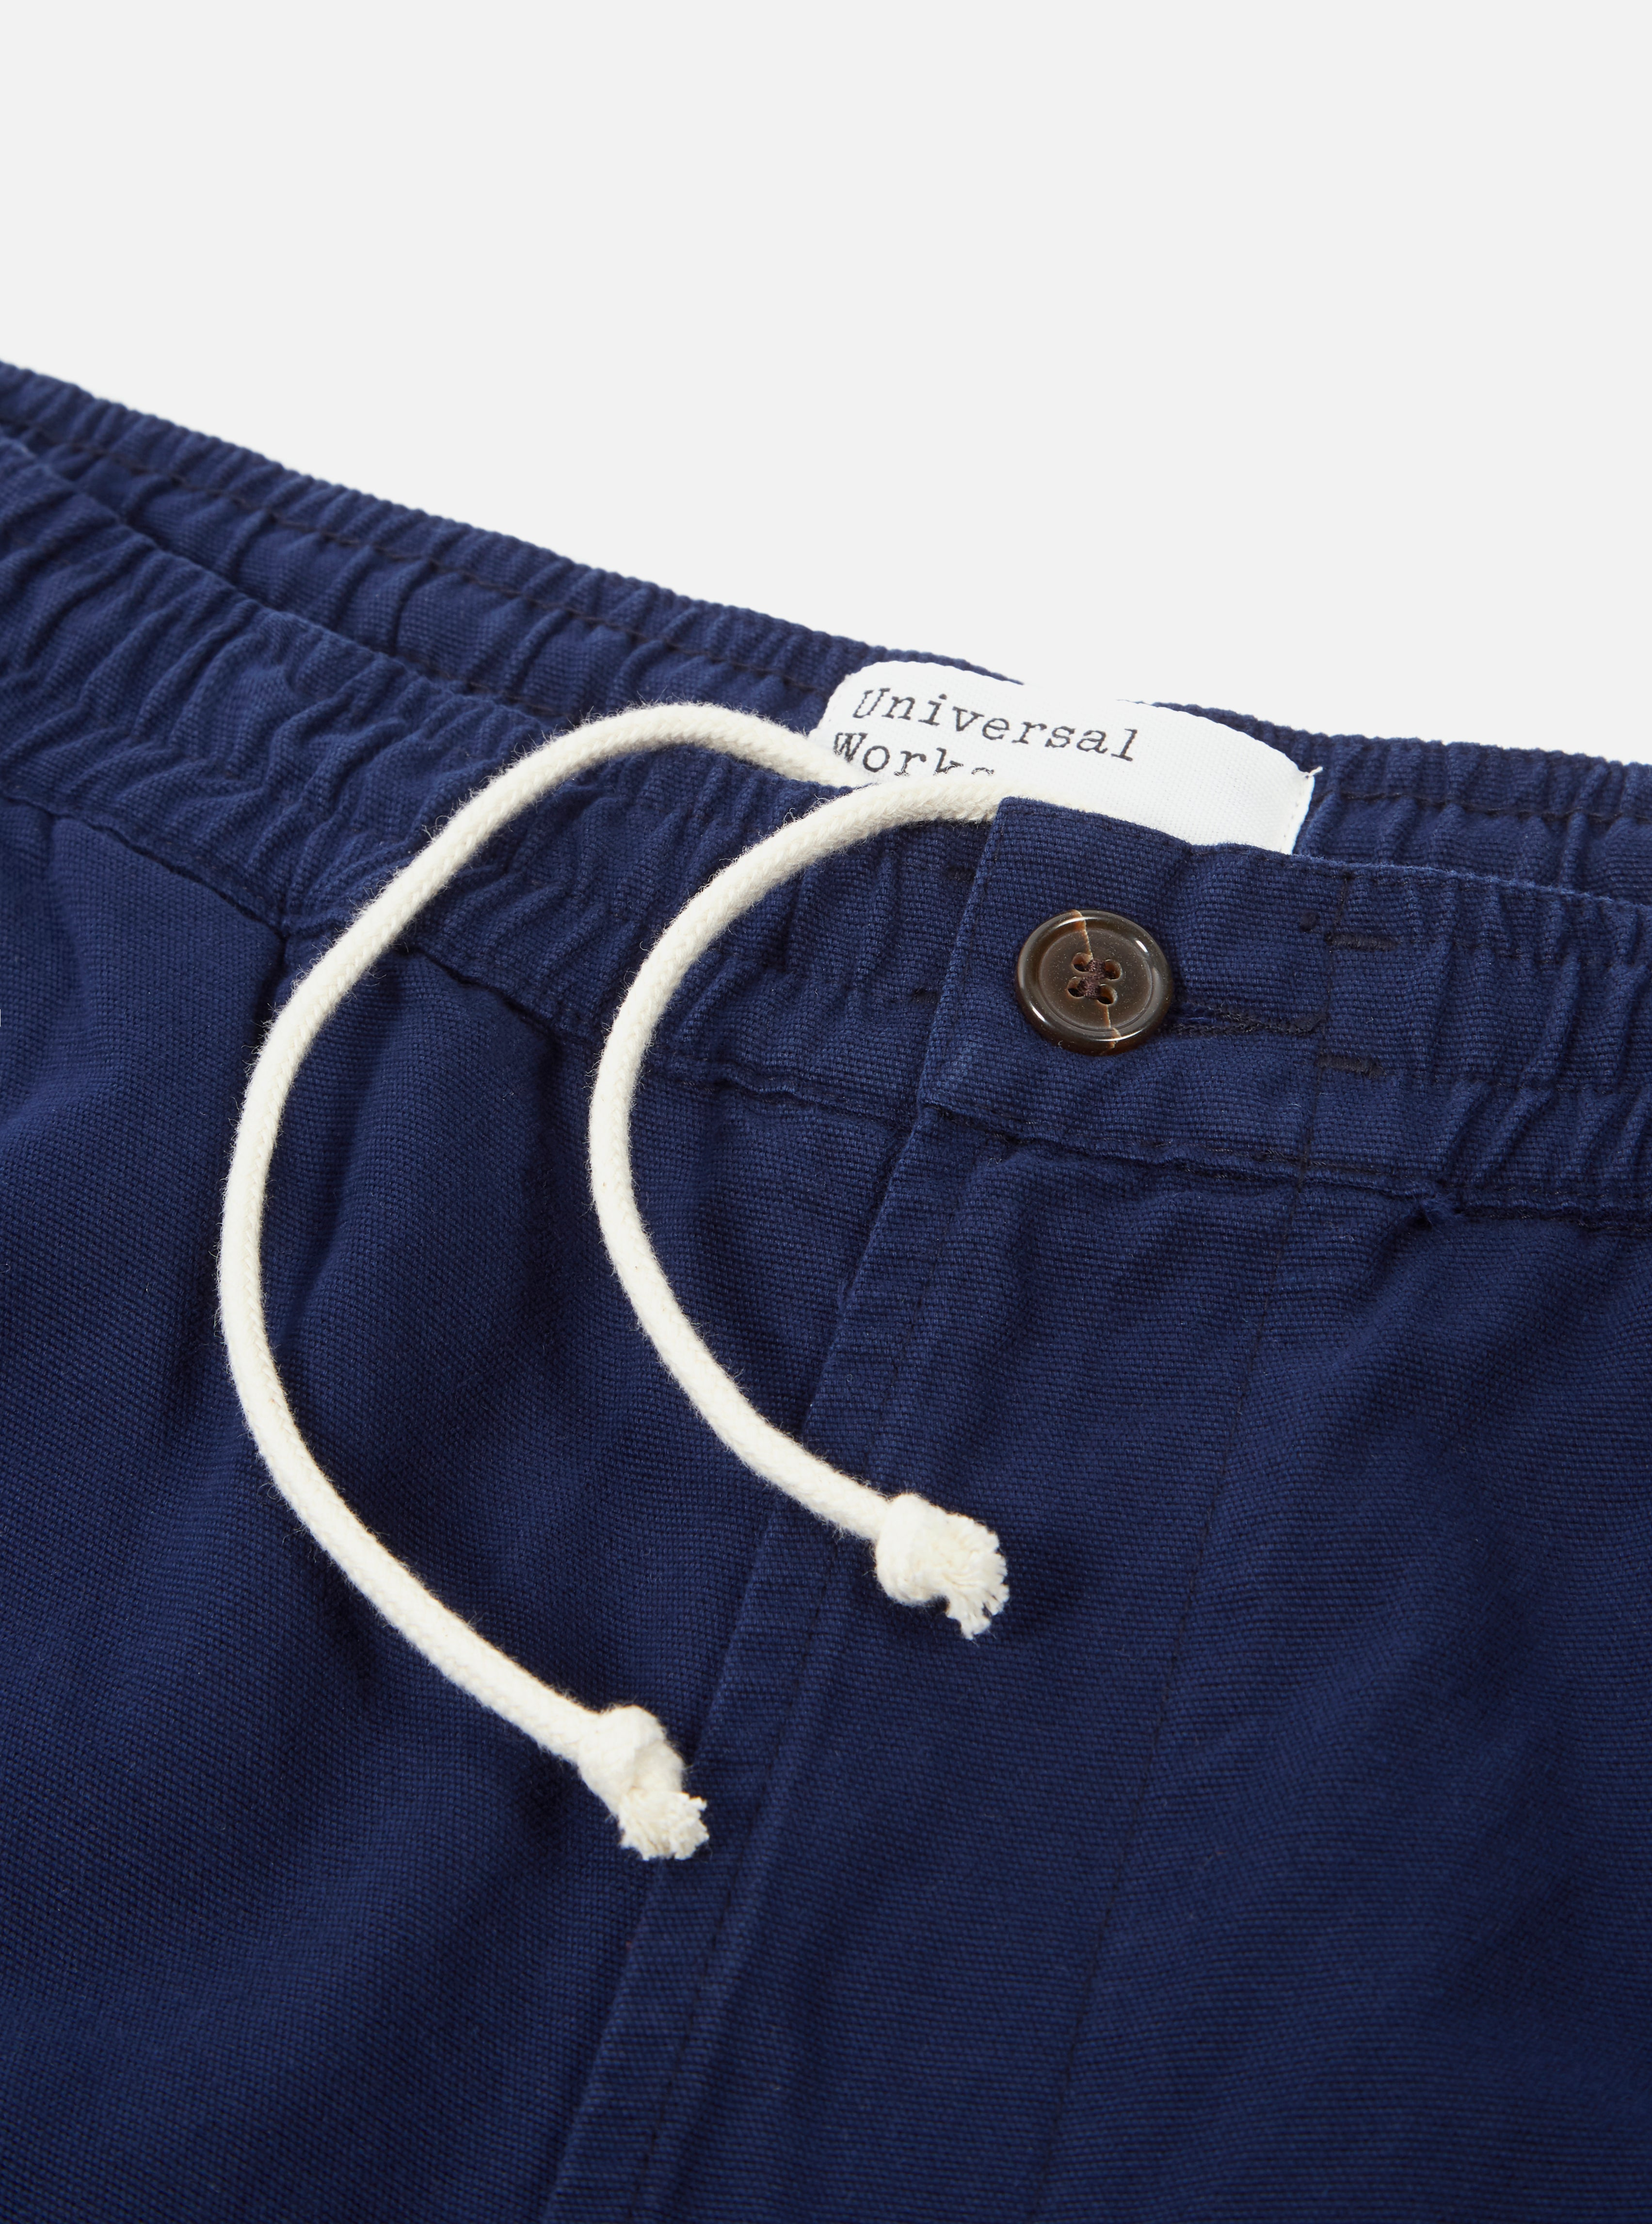 Universal Works Track Trouser in Navy Canvas